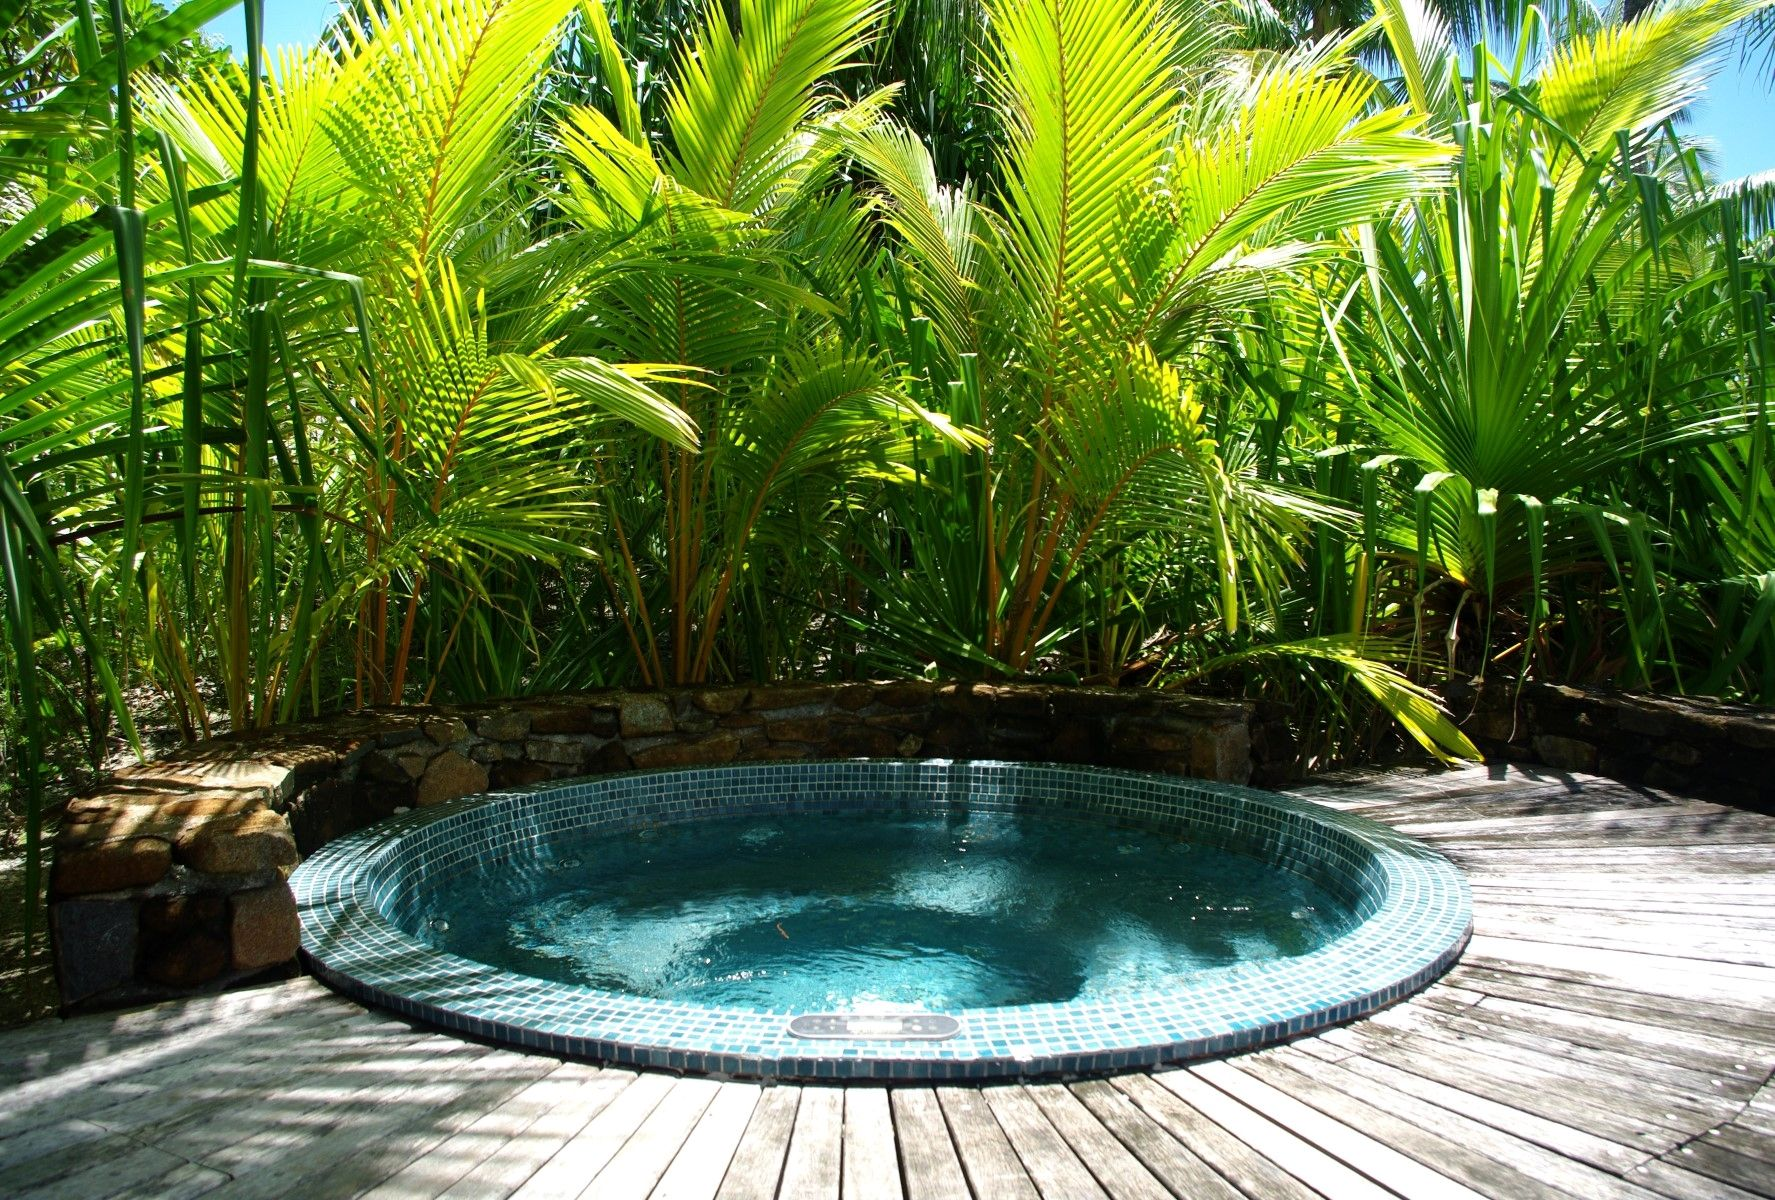 Awesome Diy Garden Ideas You Can Create Yourself To Accent Your Backyard Fresh Outdoor Jacuzzi Tropica Jacuzzi Outdoor Tropical Garden Tropical Garden Design